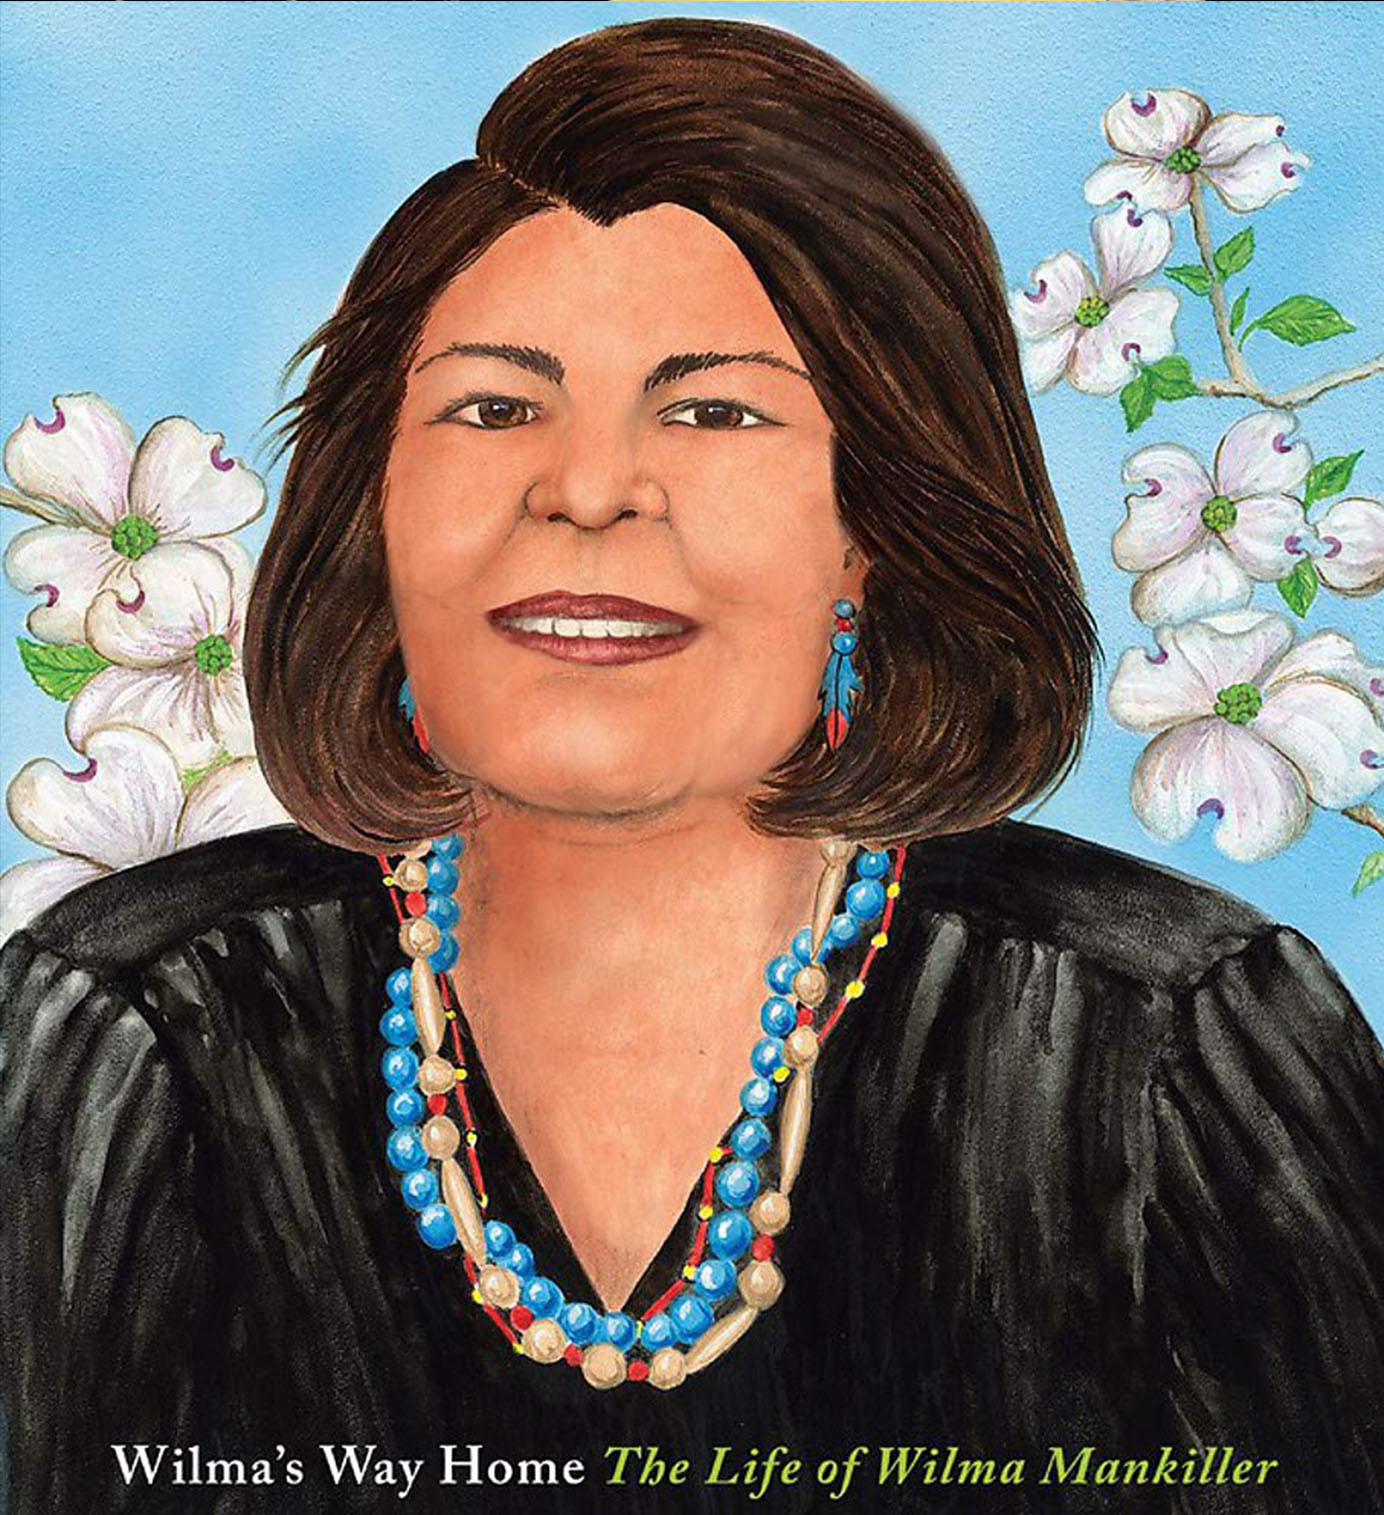 WILMA'S WAY HOME: THE LIFE OF WILMA MANKILLER - DOREEN RAPPAPORT